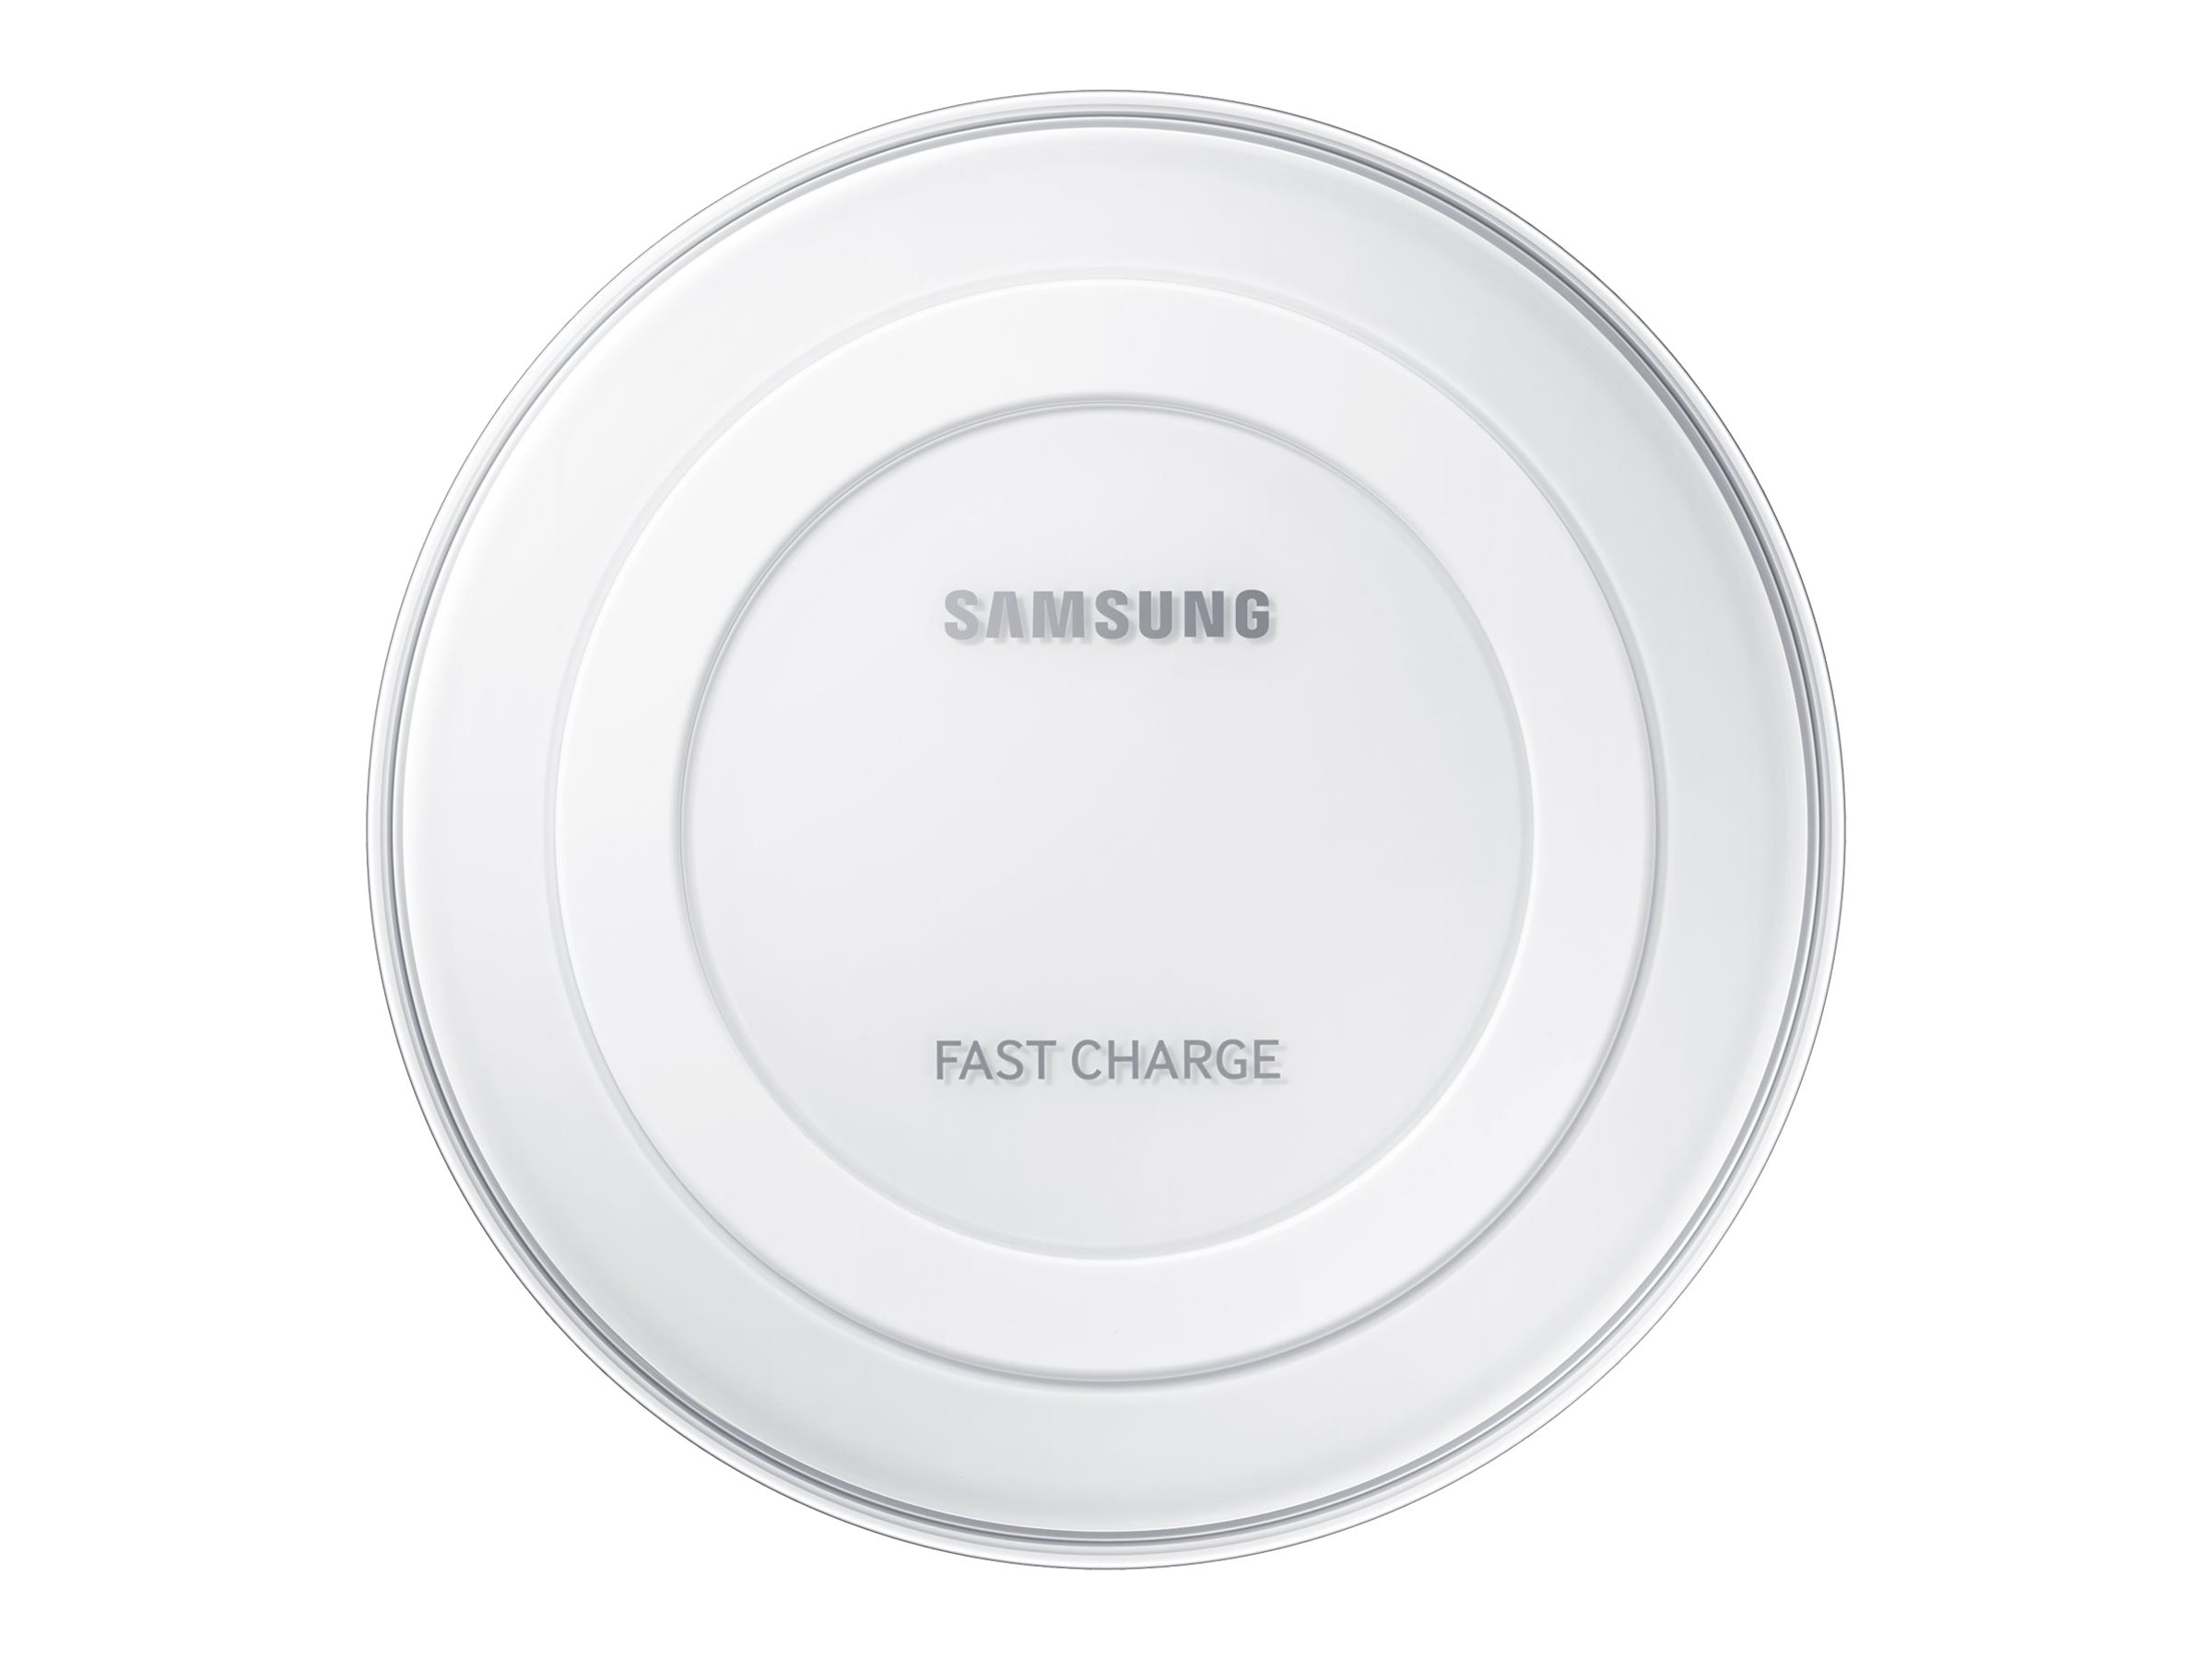 Samsung Fast Charge Wireless Charging Pad, White, EP-PN920TWEGUS